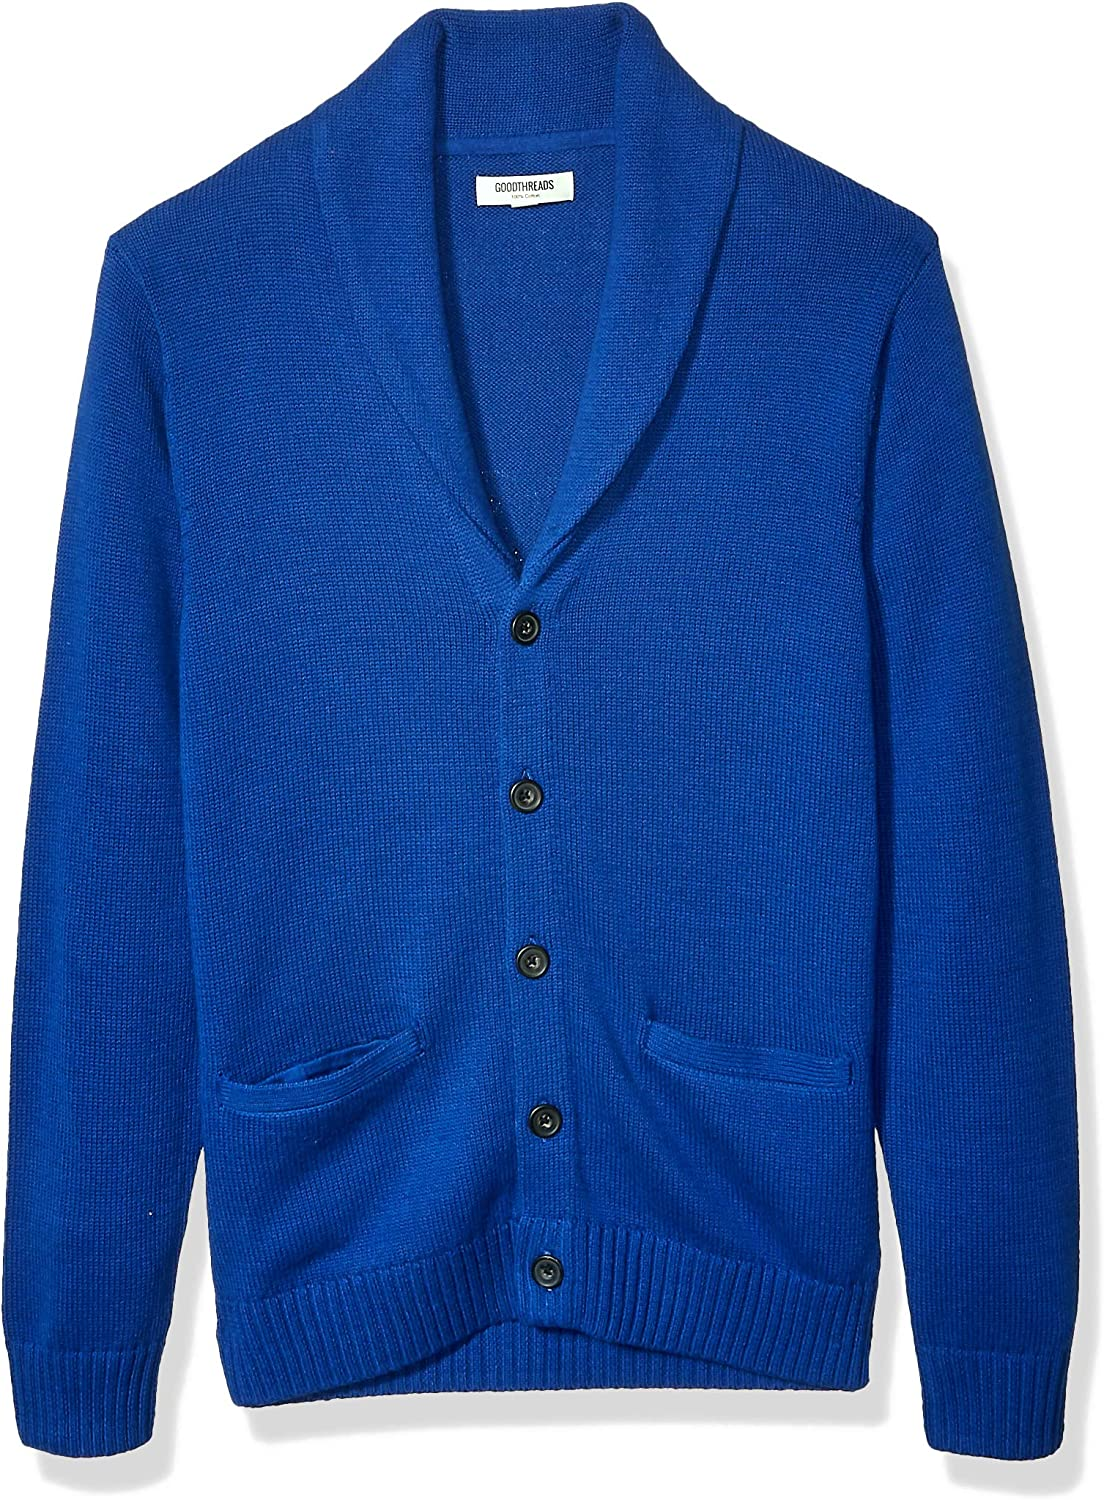 60s 70s Men's Jackets & Sweaters Amazon Brand - Goodthreads Mens Soft Cotton Shawl Cardigan Sweater $43.55 AT vintagedancer.com